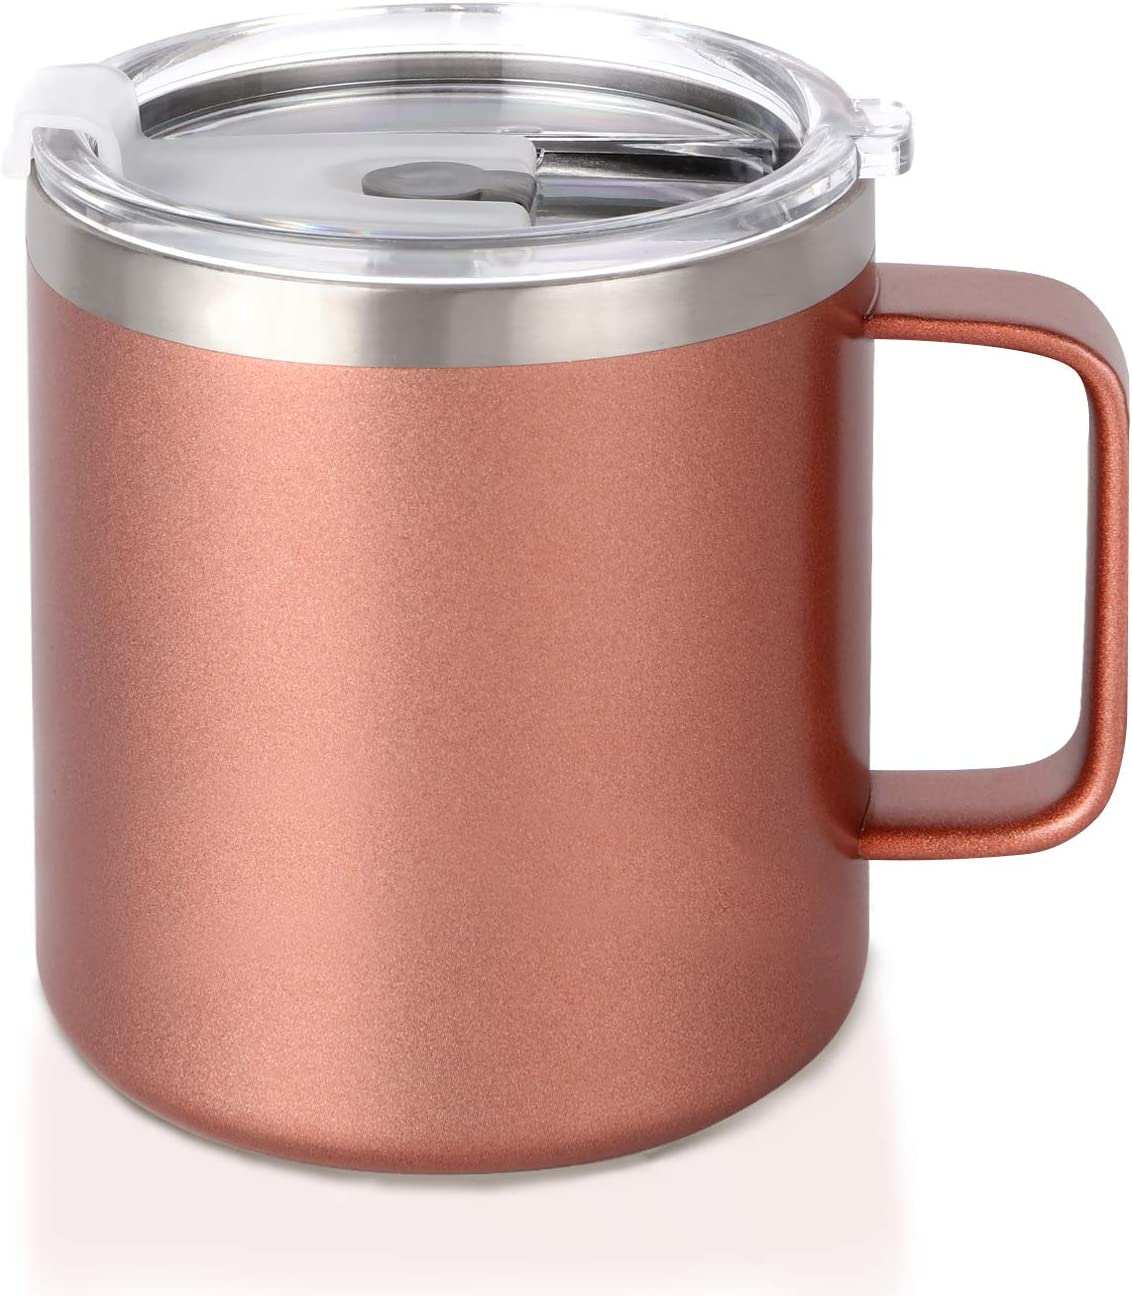 14oz. Travel Coffee Mug with Lid and Handle, Stainless Steel Vacuum Insulated Tea Cup for Home Office and Camping (Rose Gold)